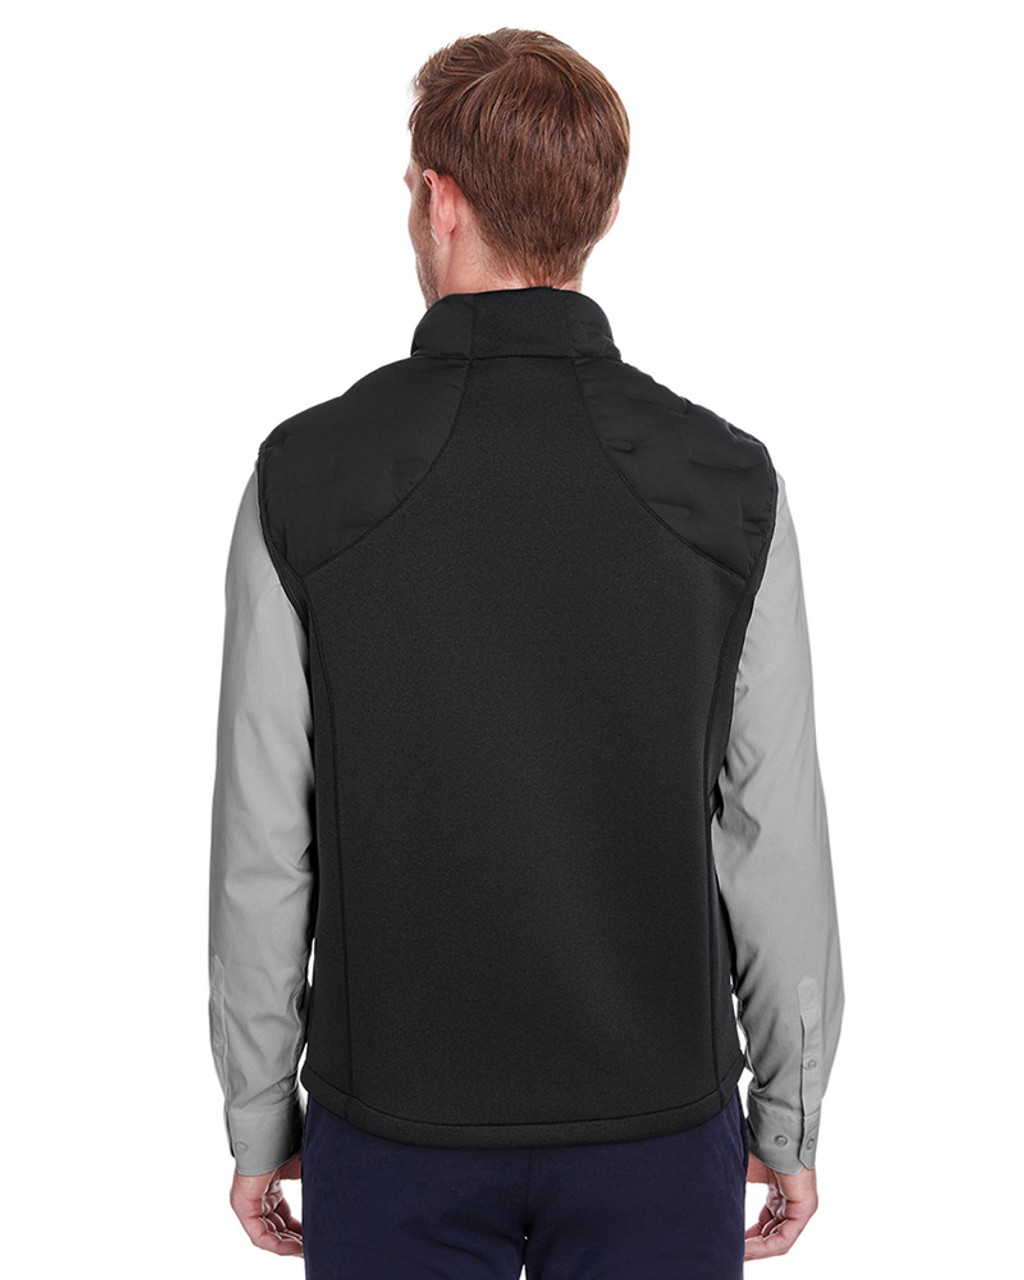 Black/Black/Carbon - back, NE709 North End Men's Pioneer Hybrid Vest | Blankclothing.ca